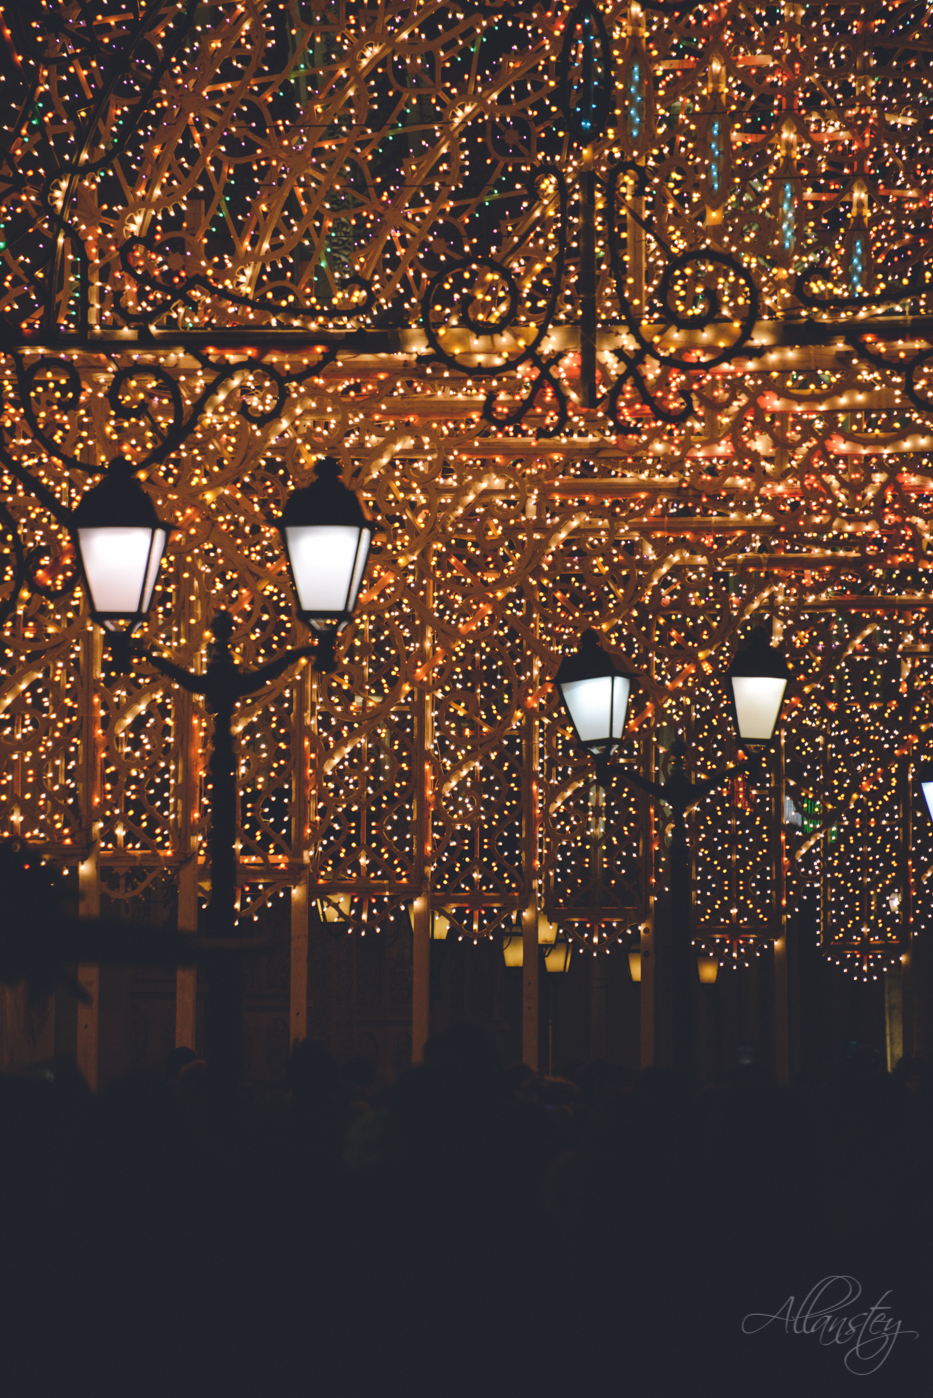 lanterns and Chrismas lights on Nikolskaya Street in Moscow, Russia.